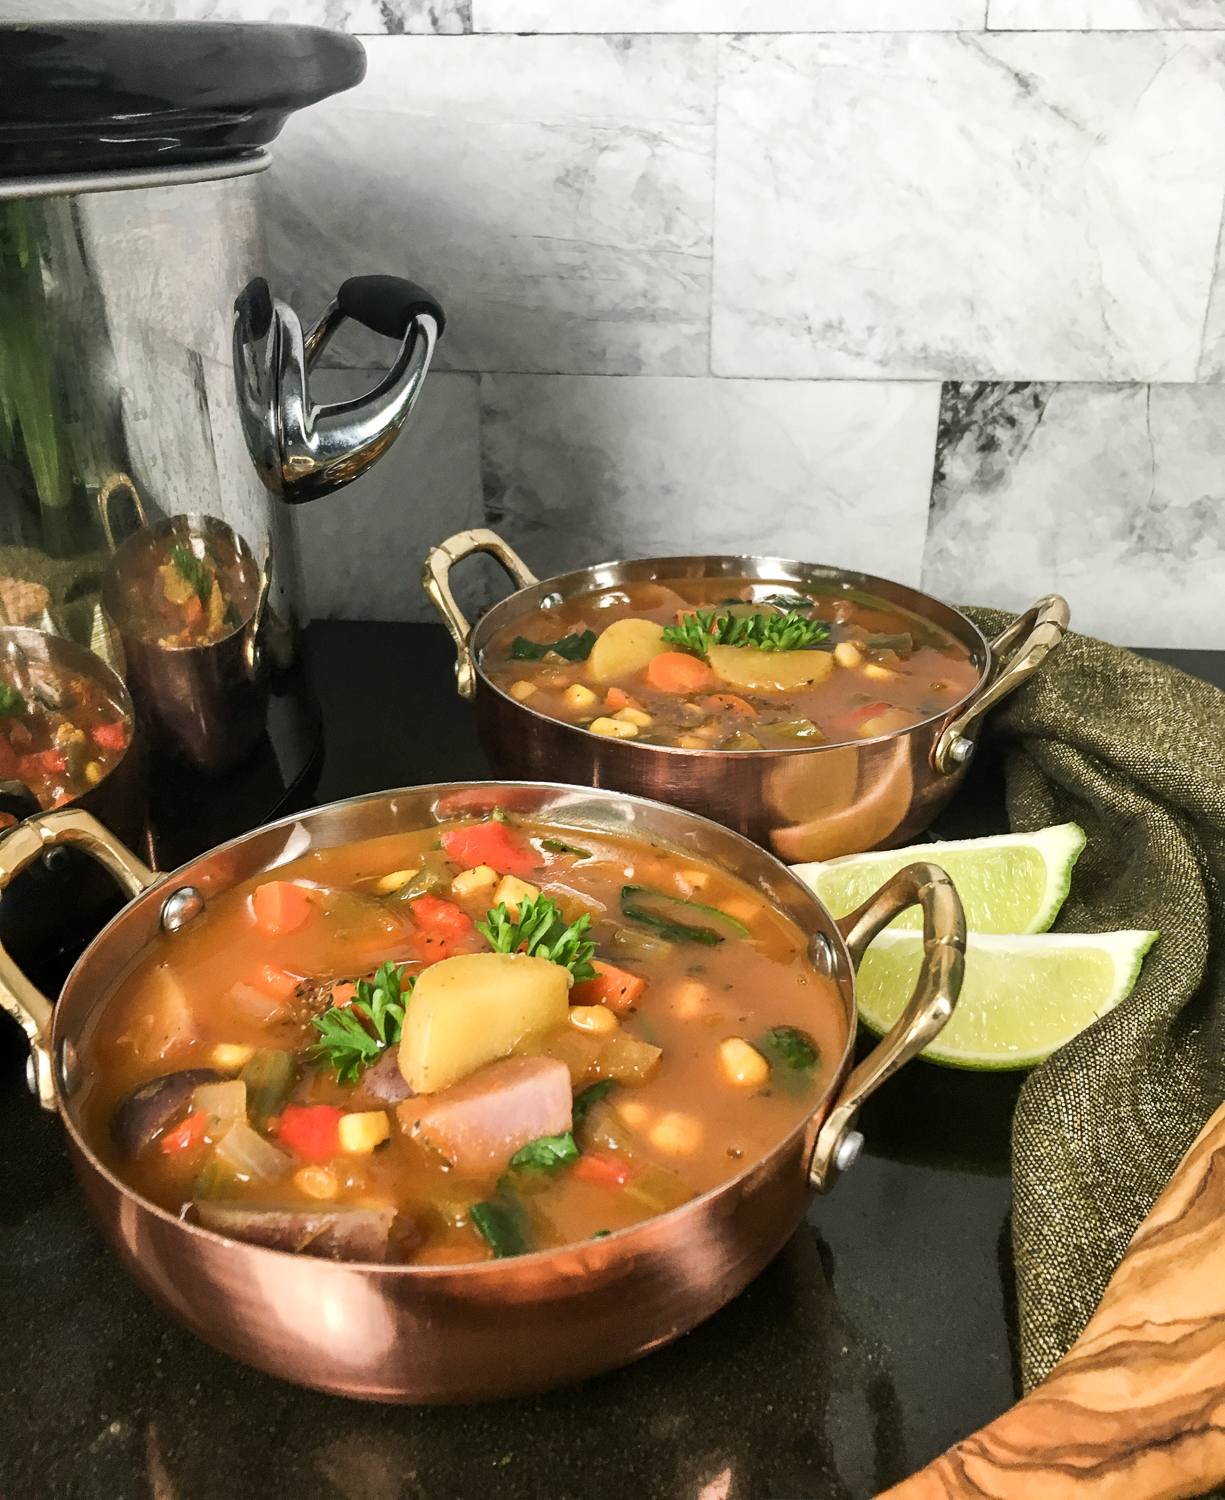 featured image showing the delicious Crockpot Vegetable Soup